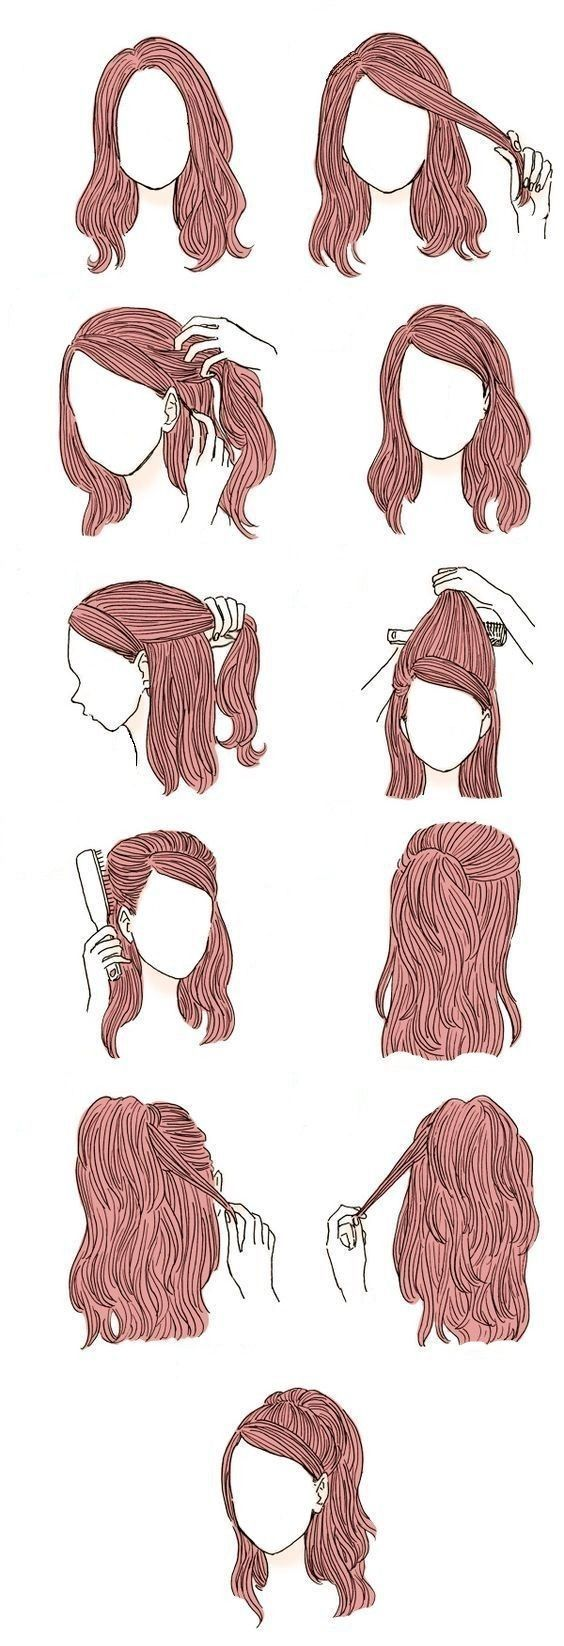 Hairstyle for the school